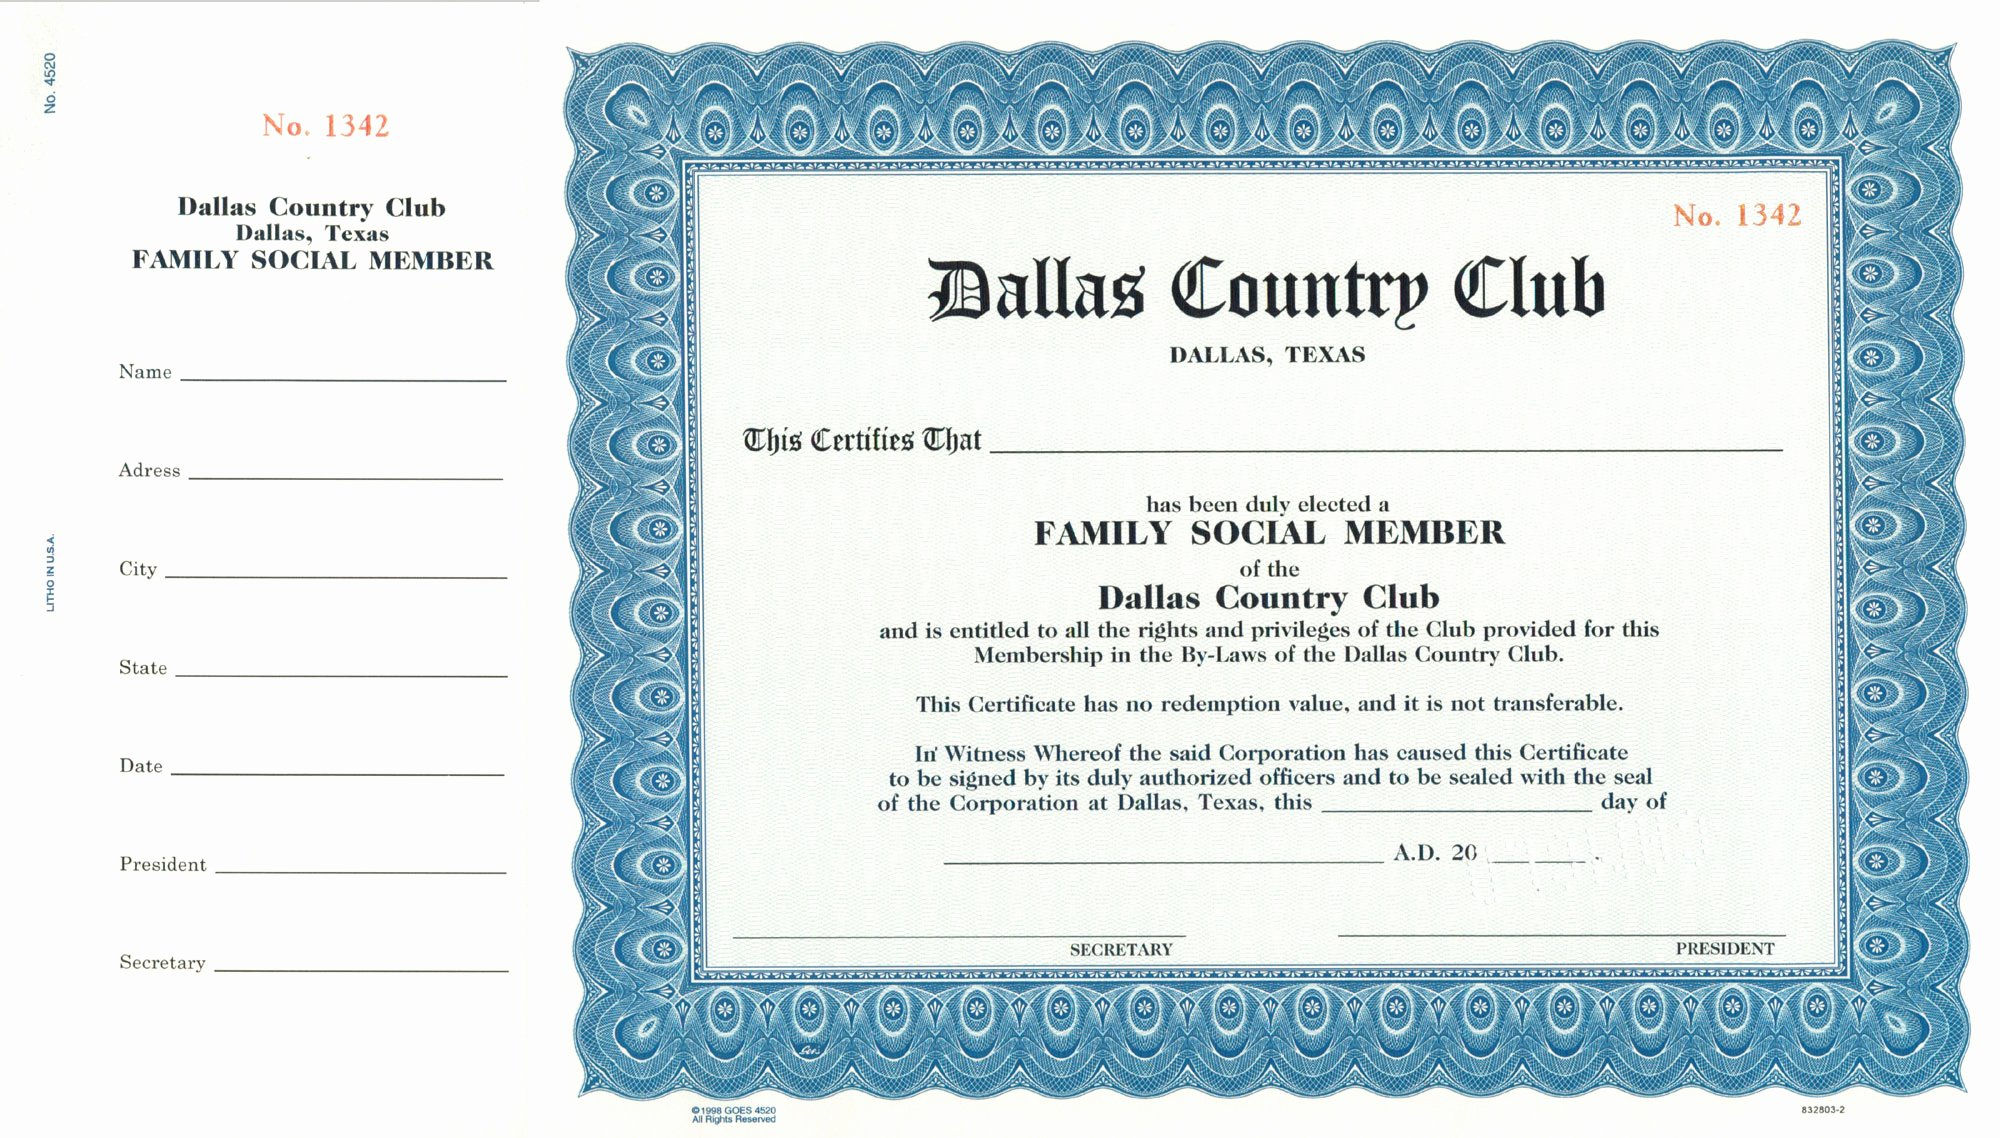 Llc Member Certificate Template Awesome Custom Certificate – Goes Lithographing 4520 – Corporate